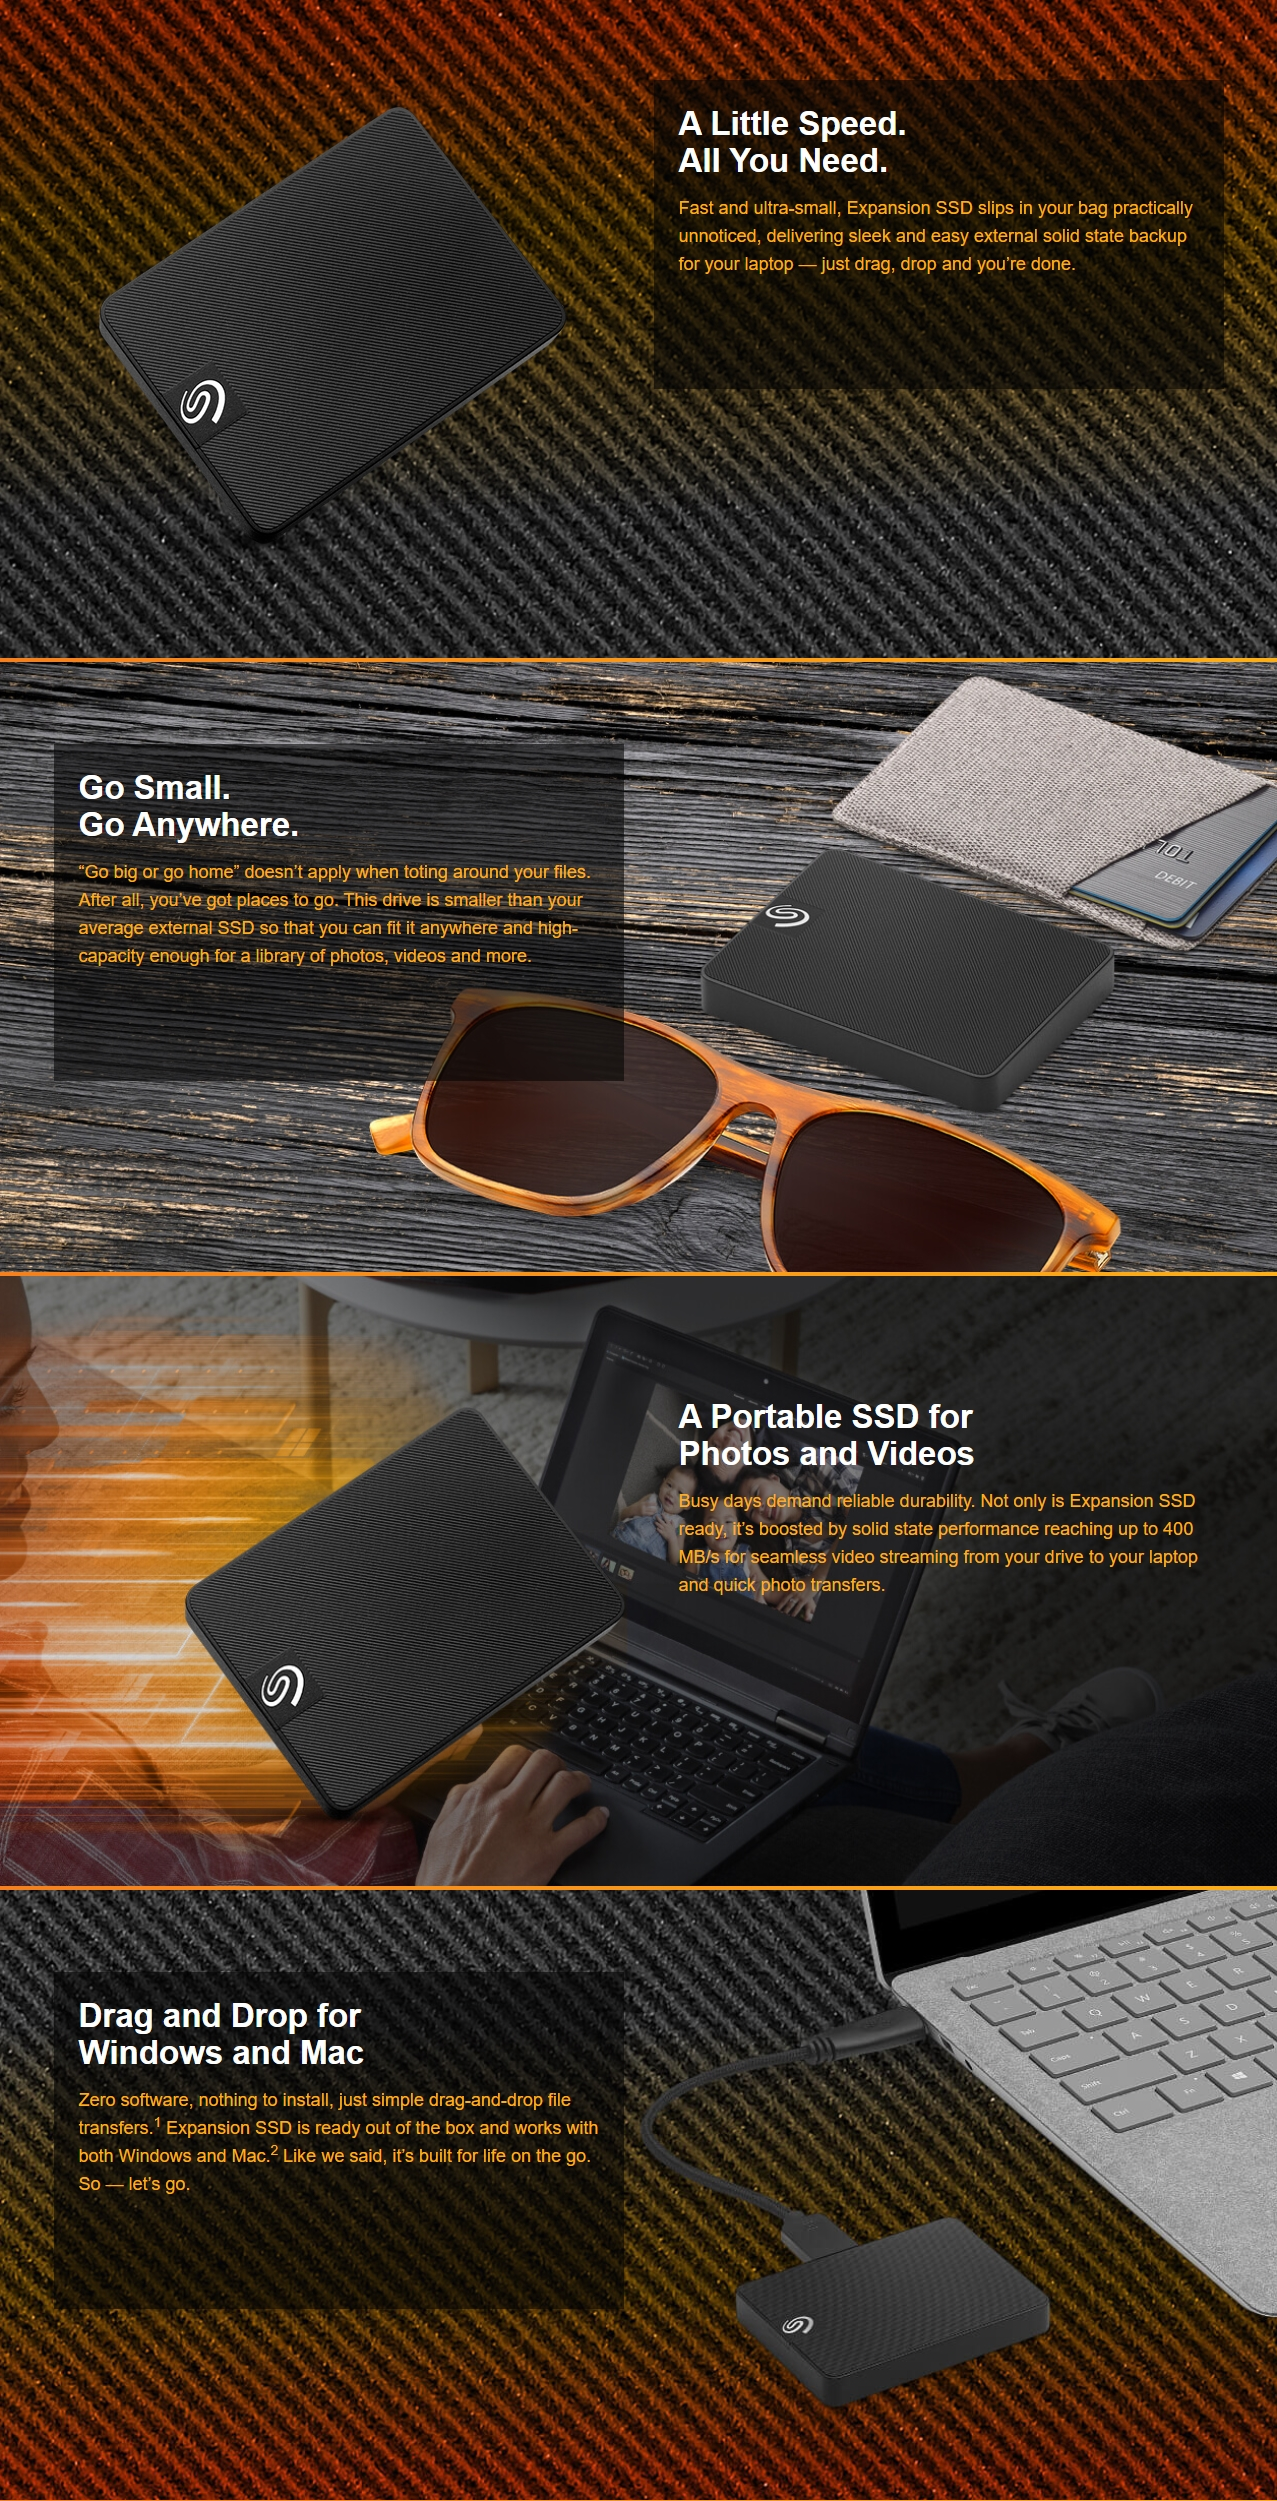 A large marketing image providing additional information about the product Seagate Expansion 1TB External SSD - Additional alt info not provided